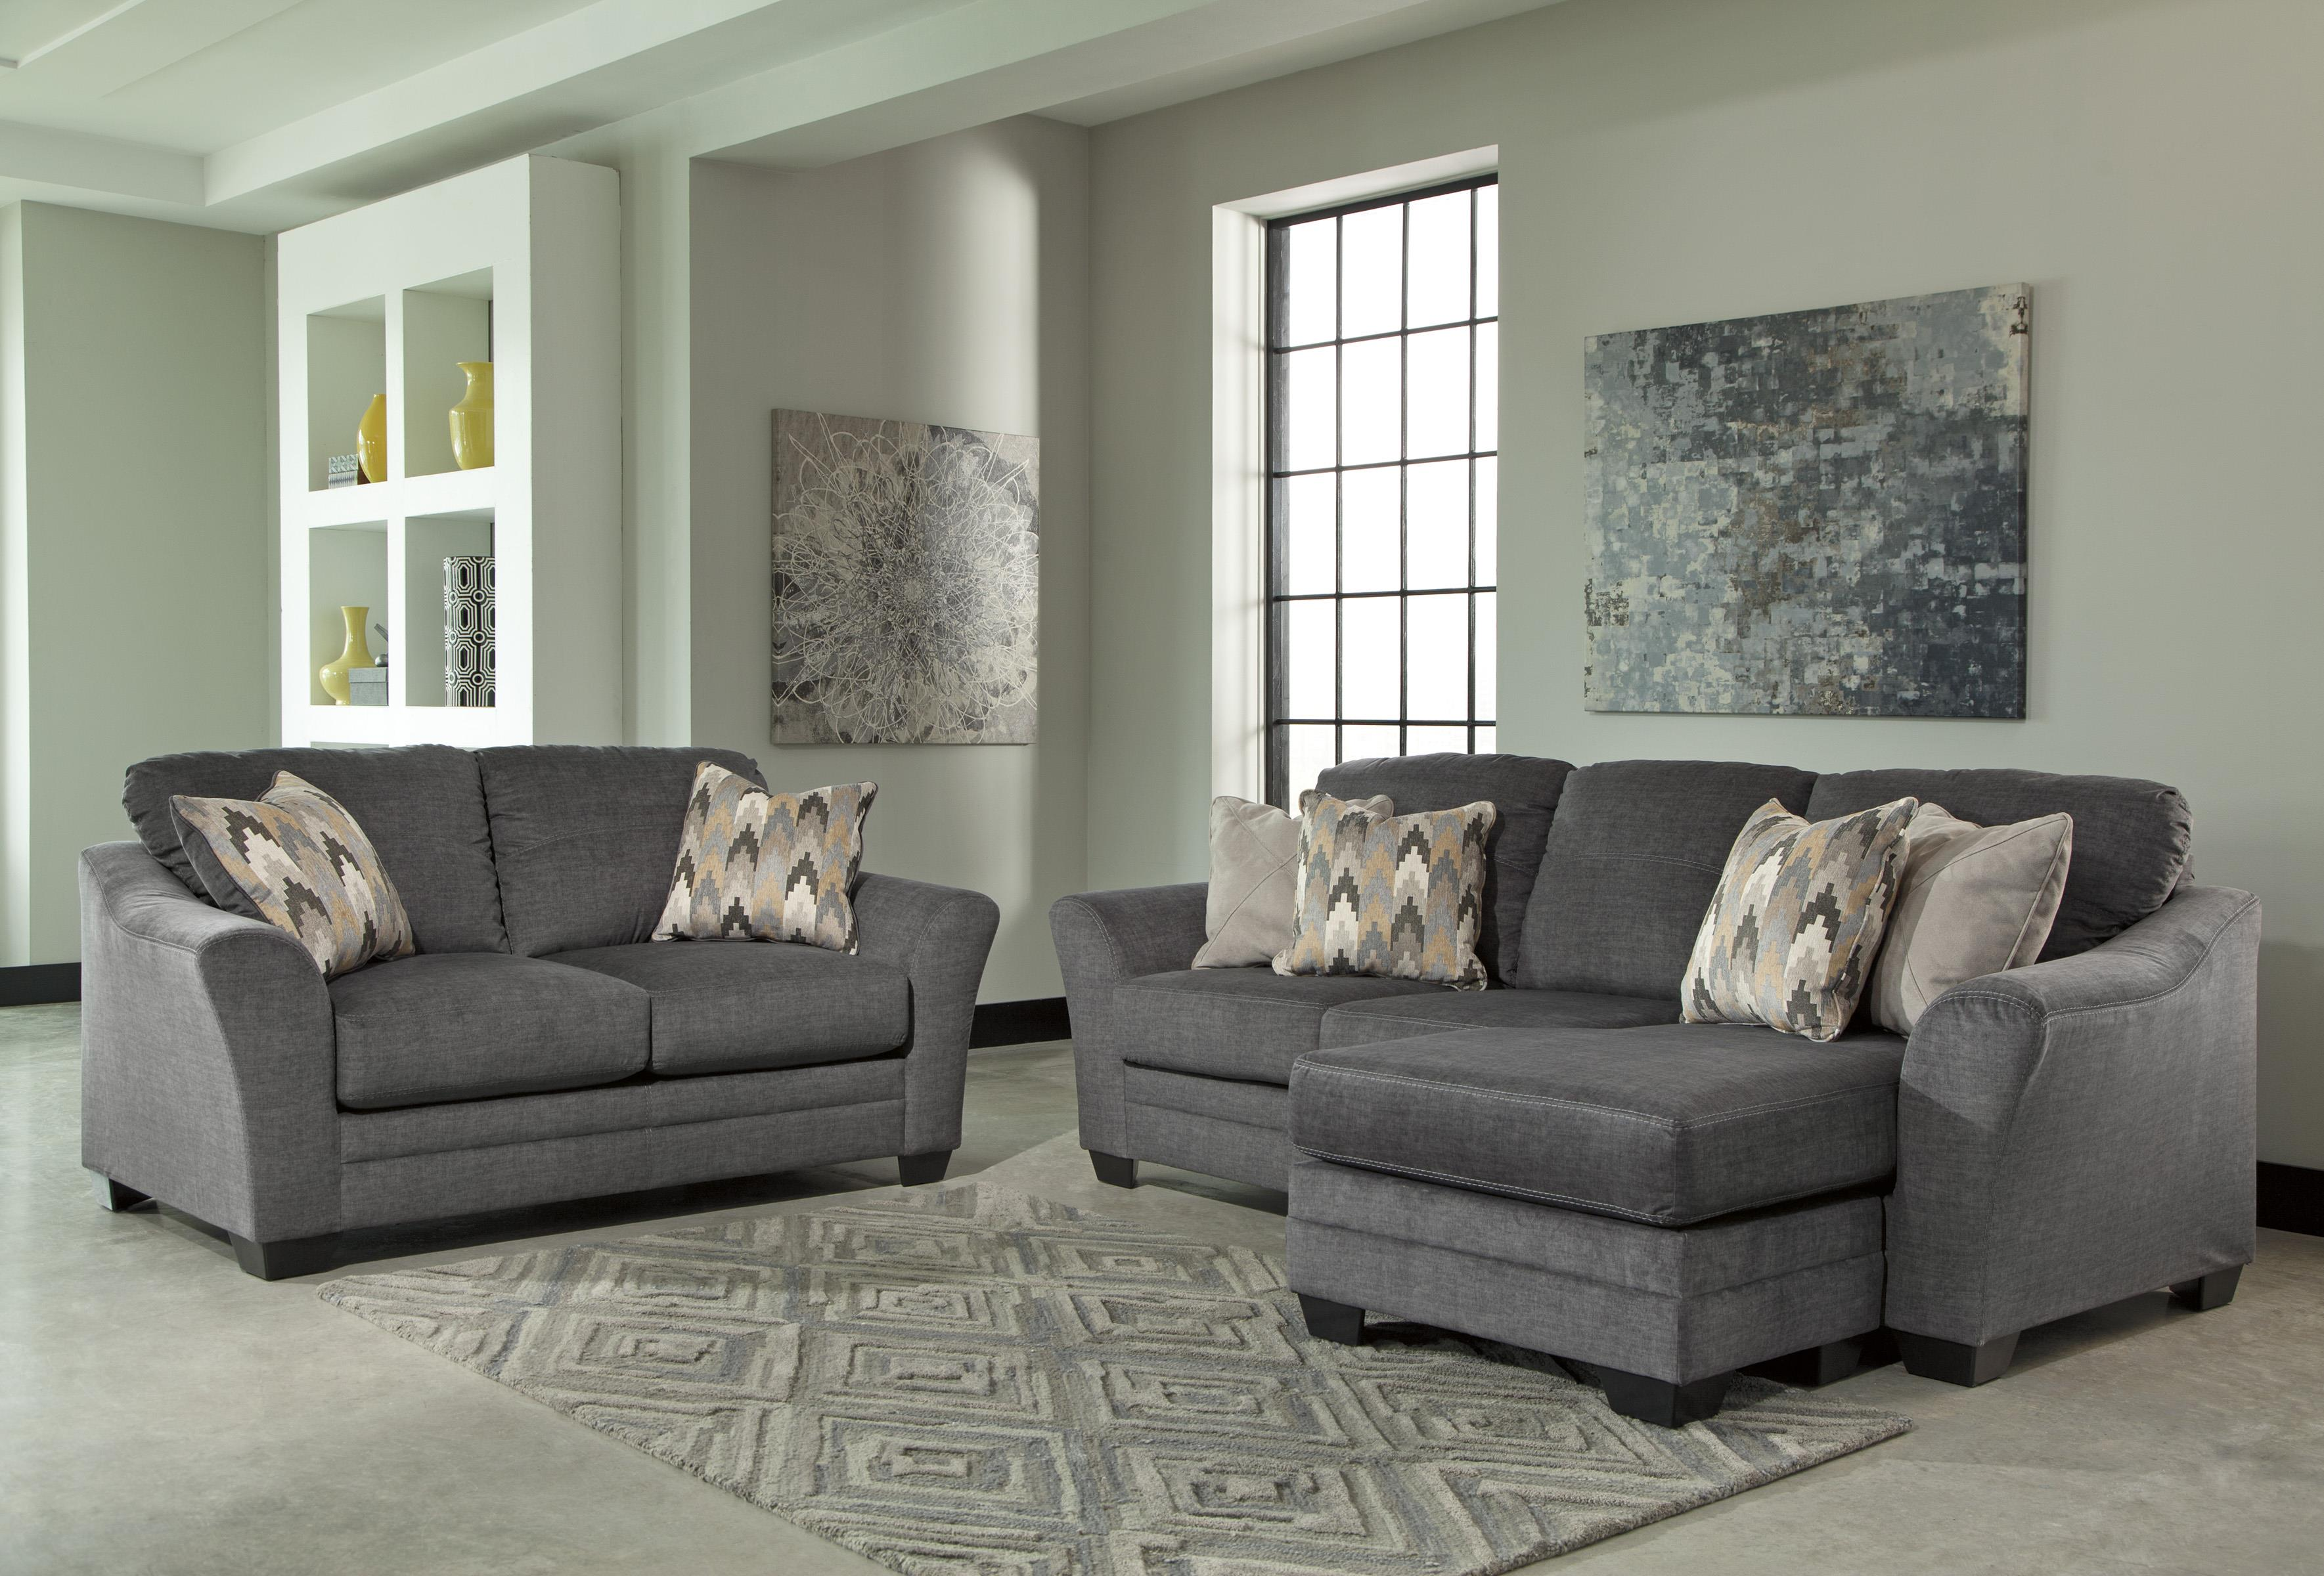 Benchcraft By Ashley Braxlin Stationary Living Room Group Royal Furniture Stationary Living